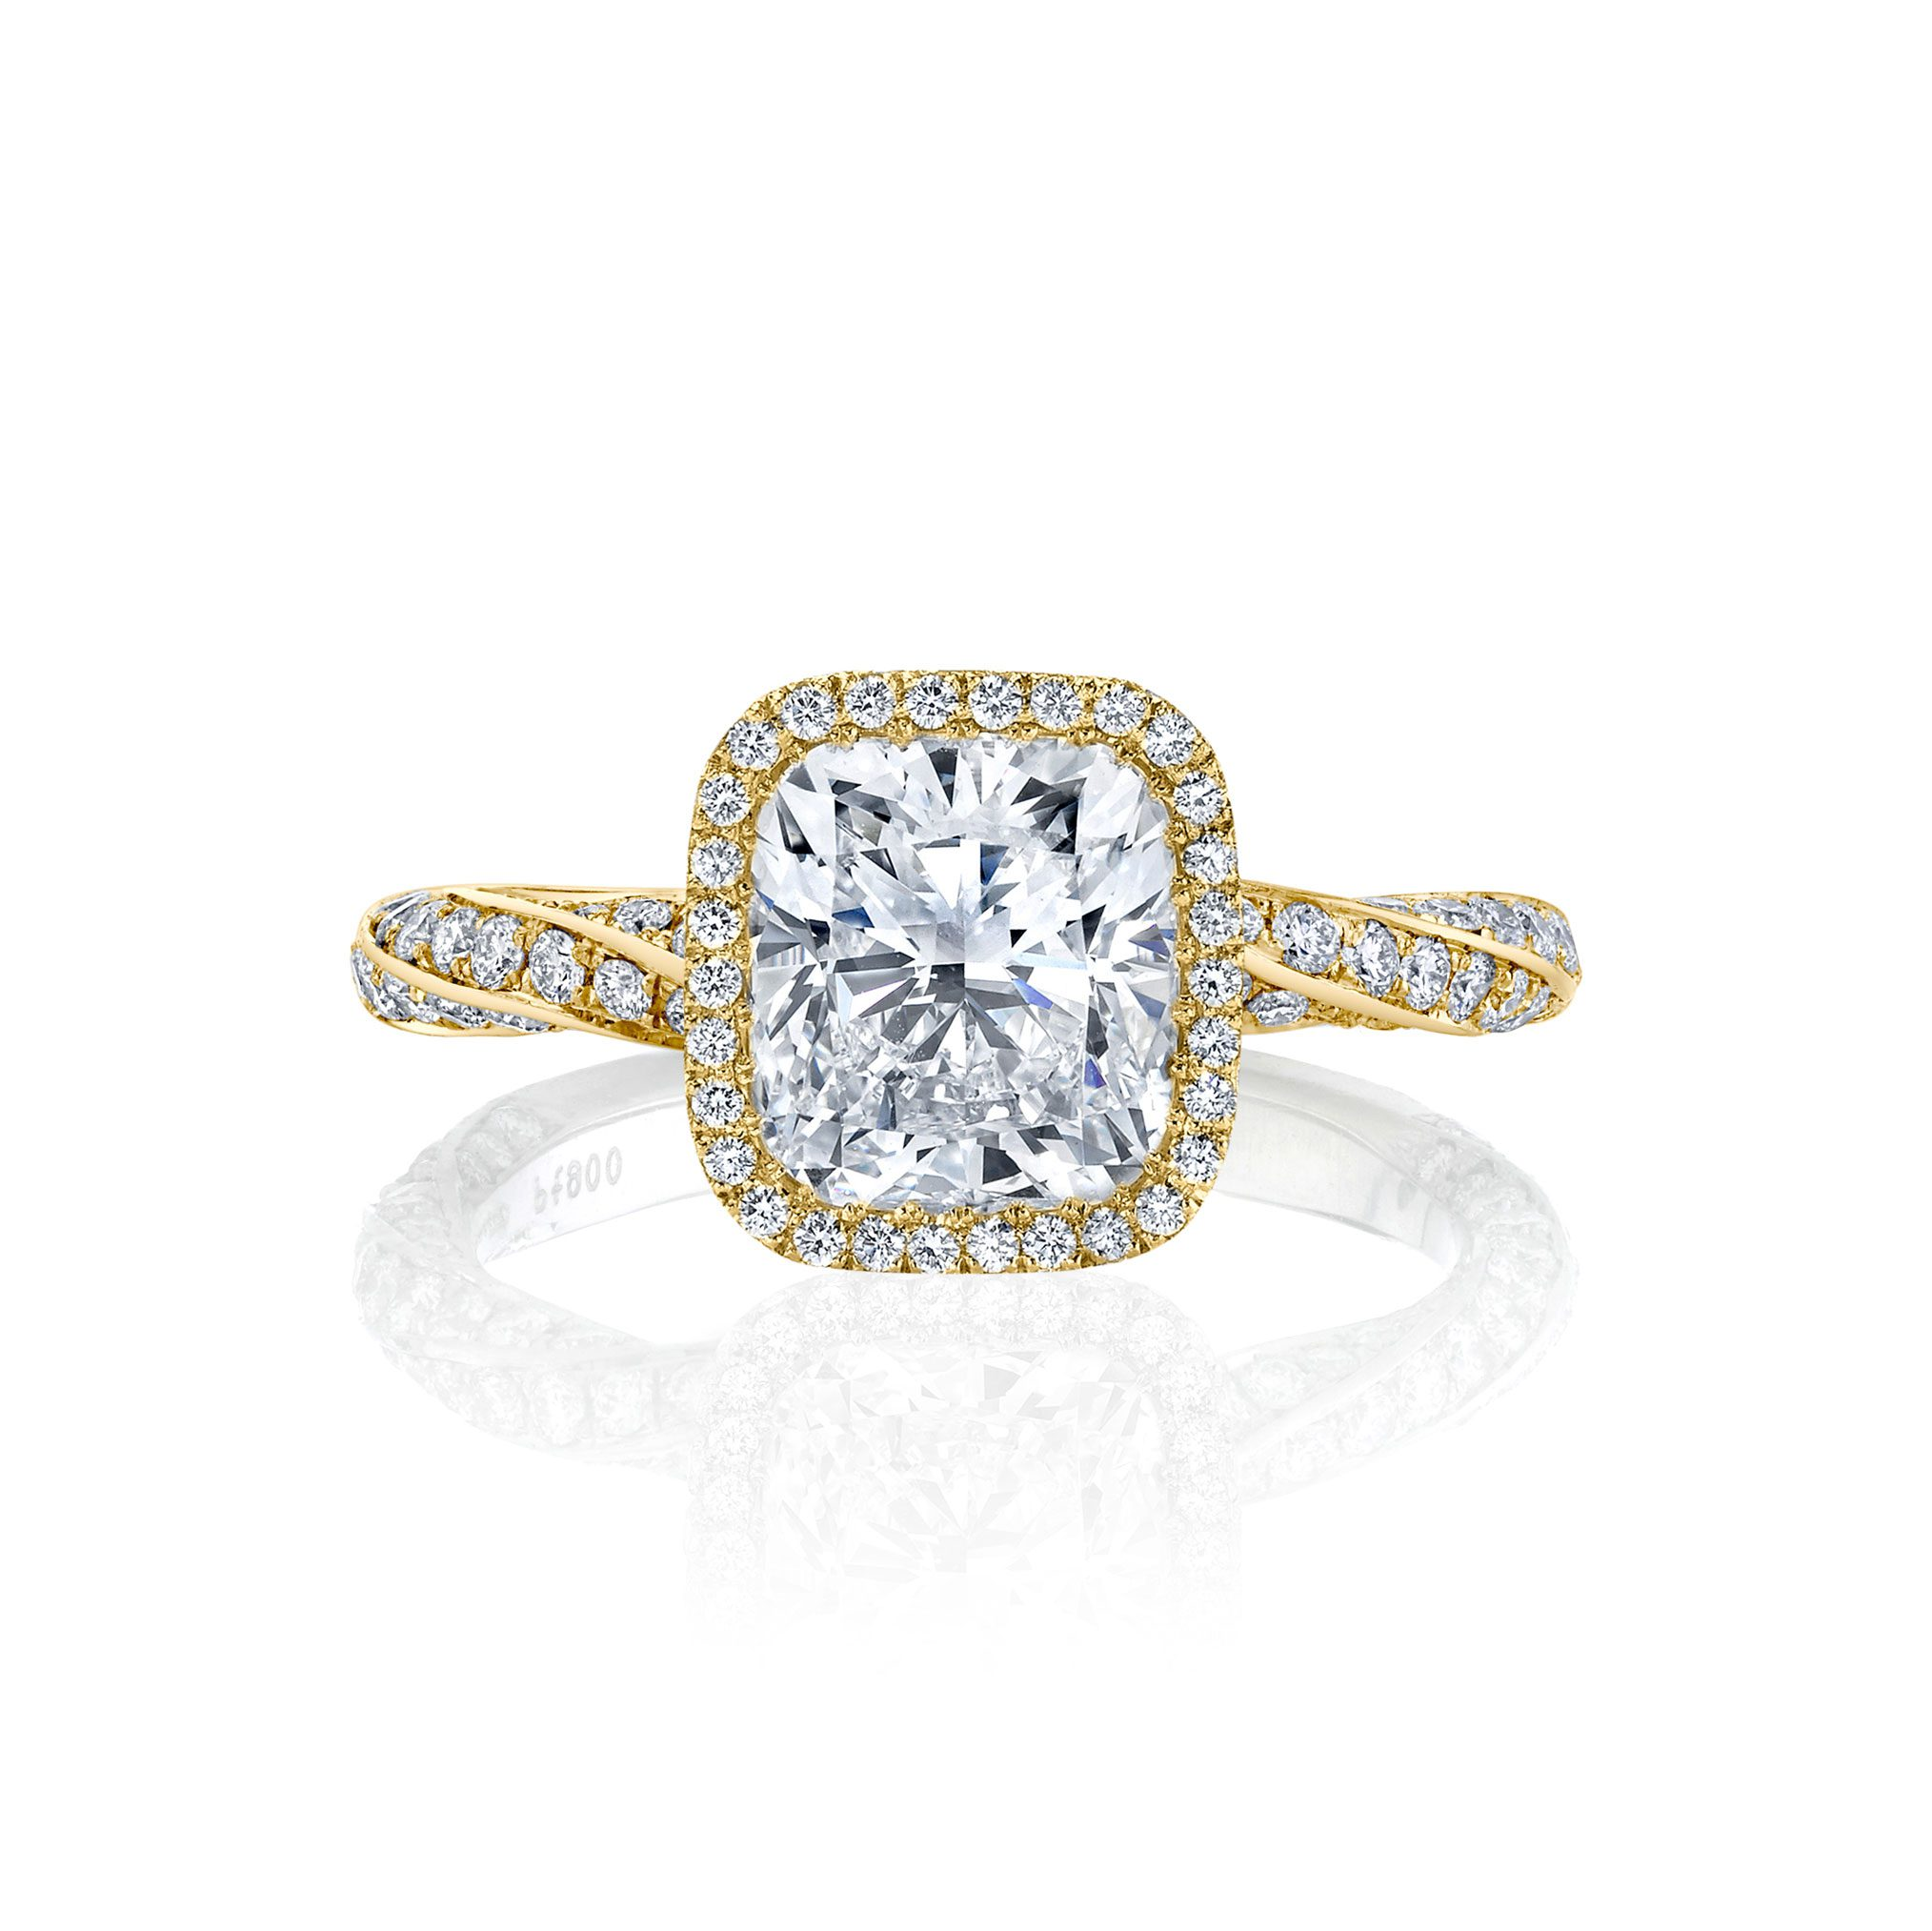 Camille Seamless Halo® Engagement Ring Cushion Cut with 18k yellow gold twisted pavé bandCamille Seamless Halo® Engagement Ring Cushion Cut with 18k yellow gold twisted pavé band